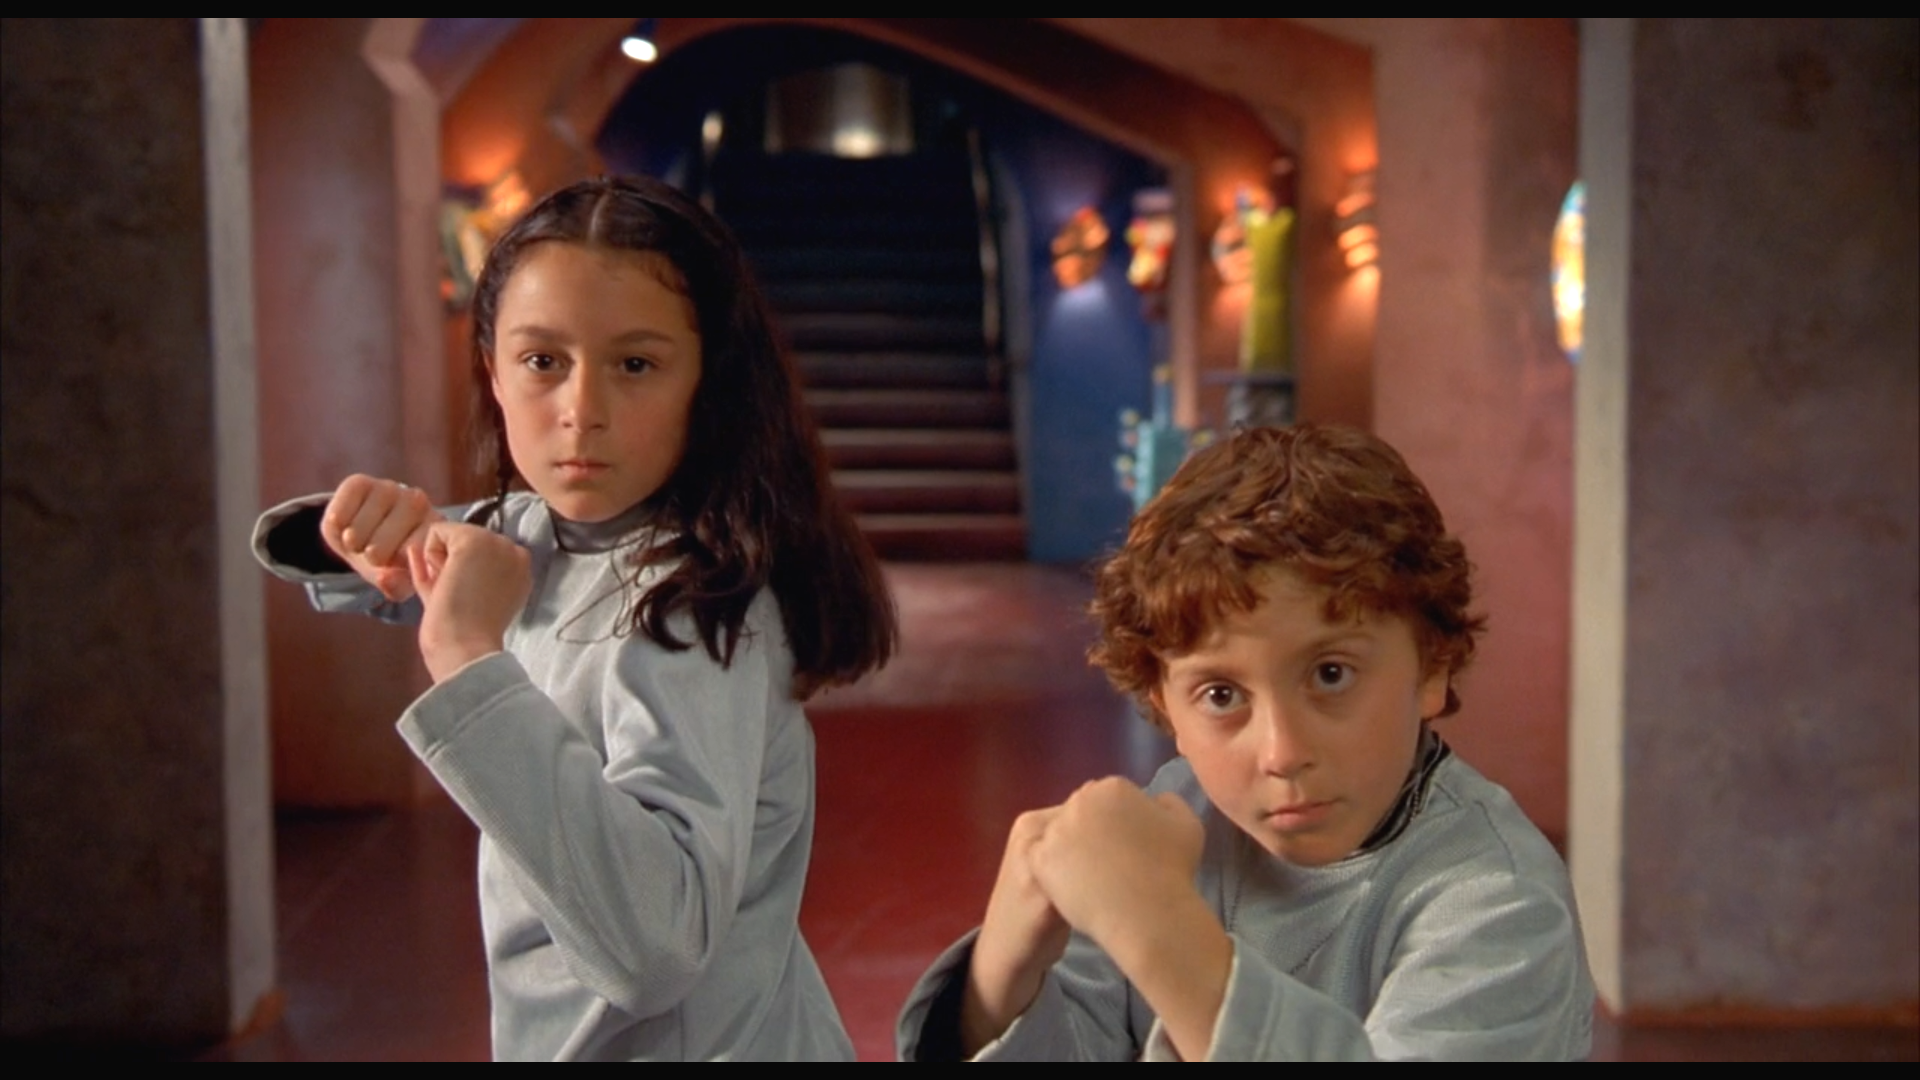 the spy kids images Spy Kids HD wallpaper and background photos 1920x1080